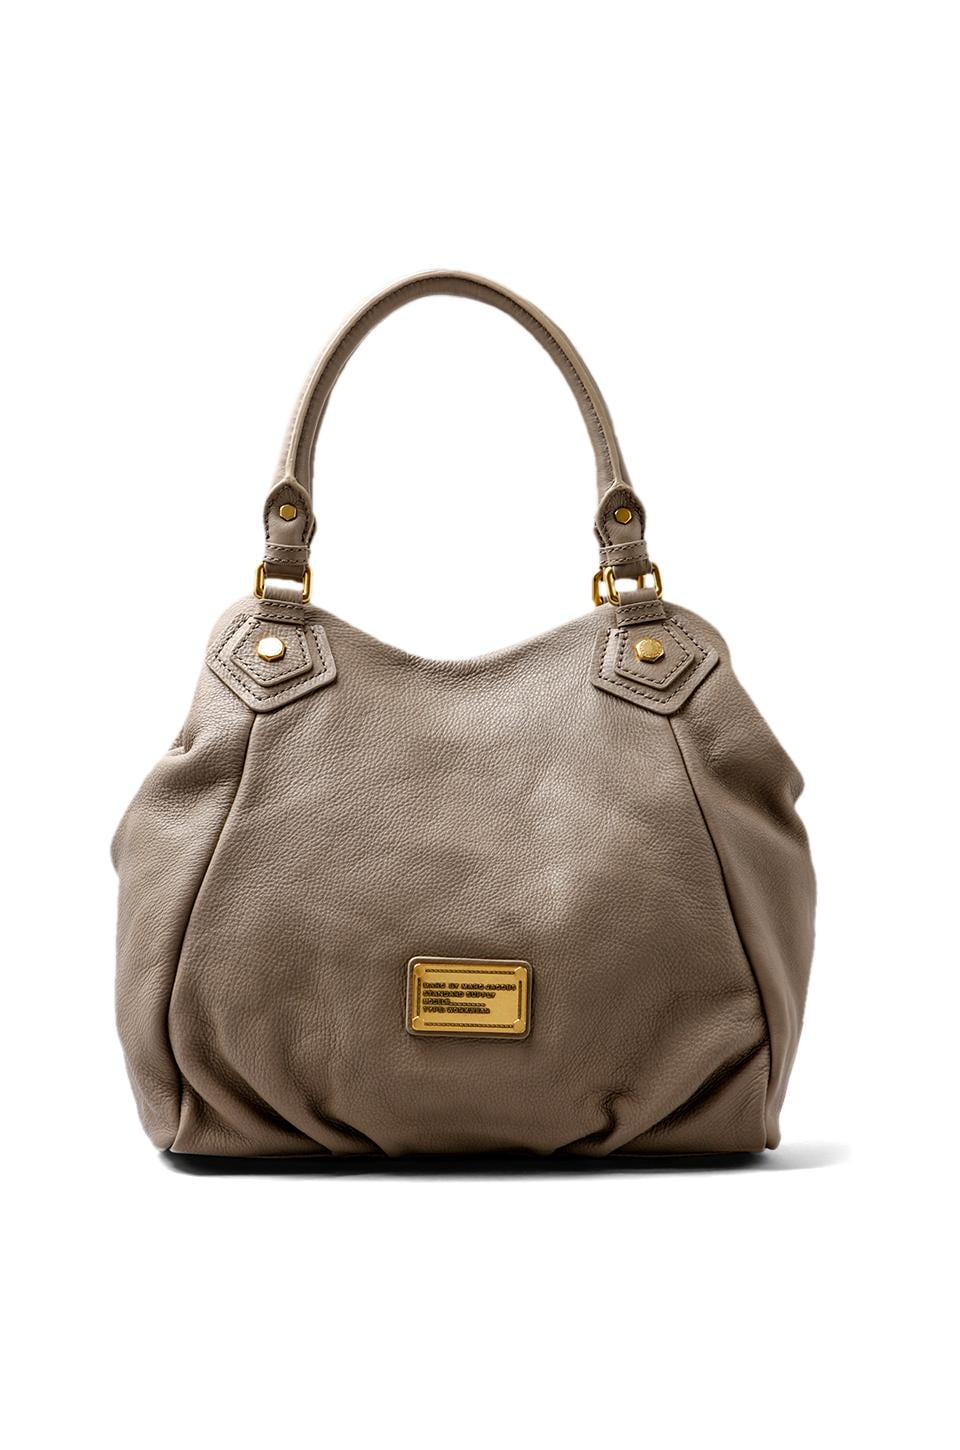 Marc by Marc Jacobs Classic Q Fran Bag in Cement